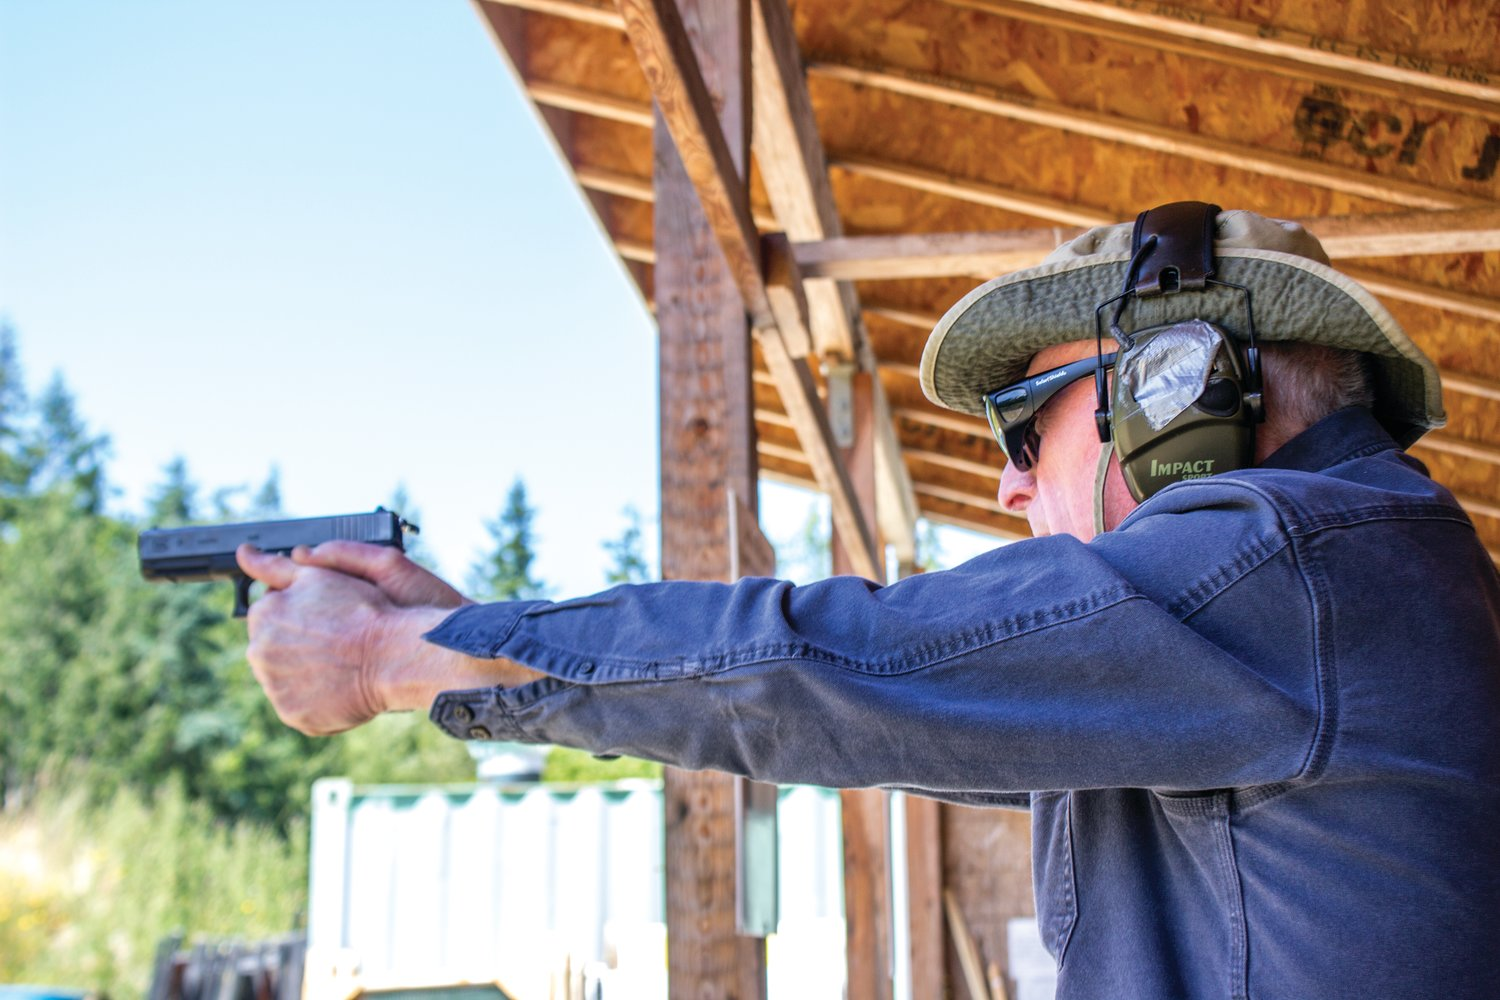 Jim Dolan, a club member for the past three years, shoots regularly at the range to retain his proficiency.